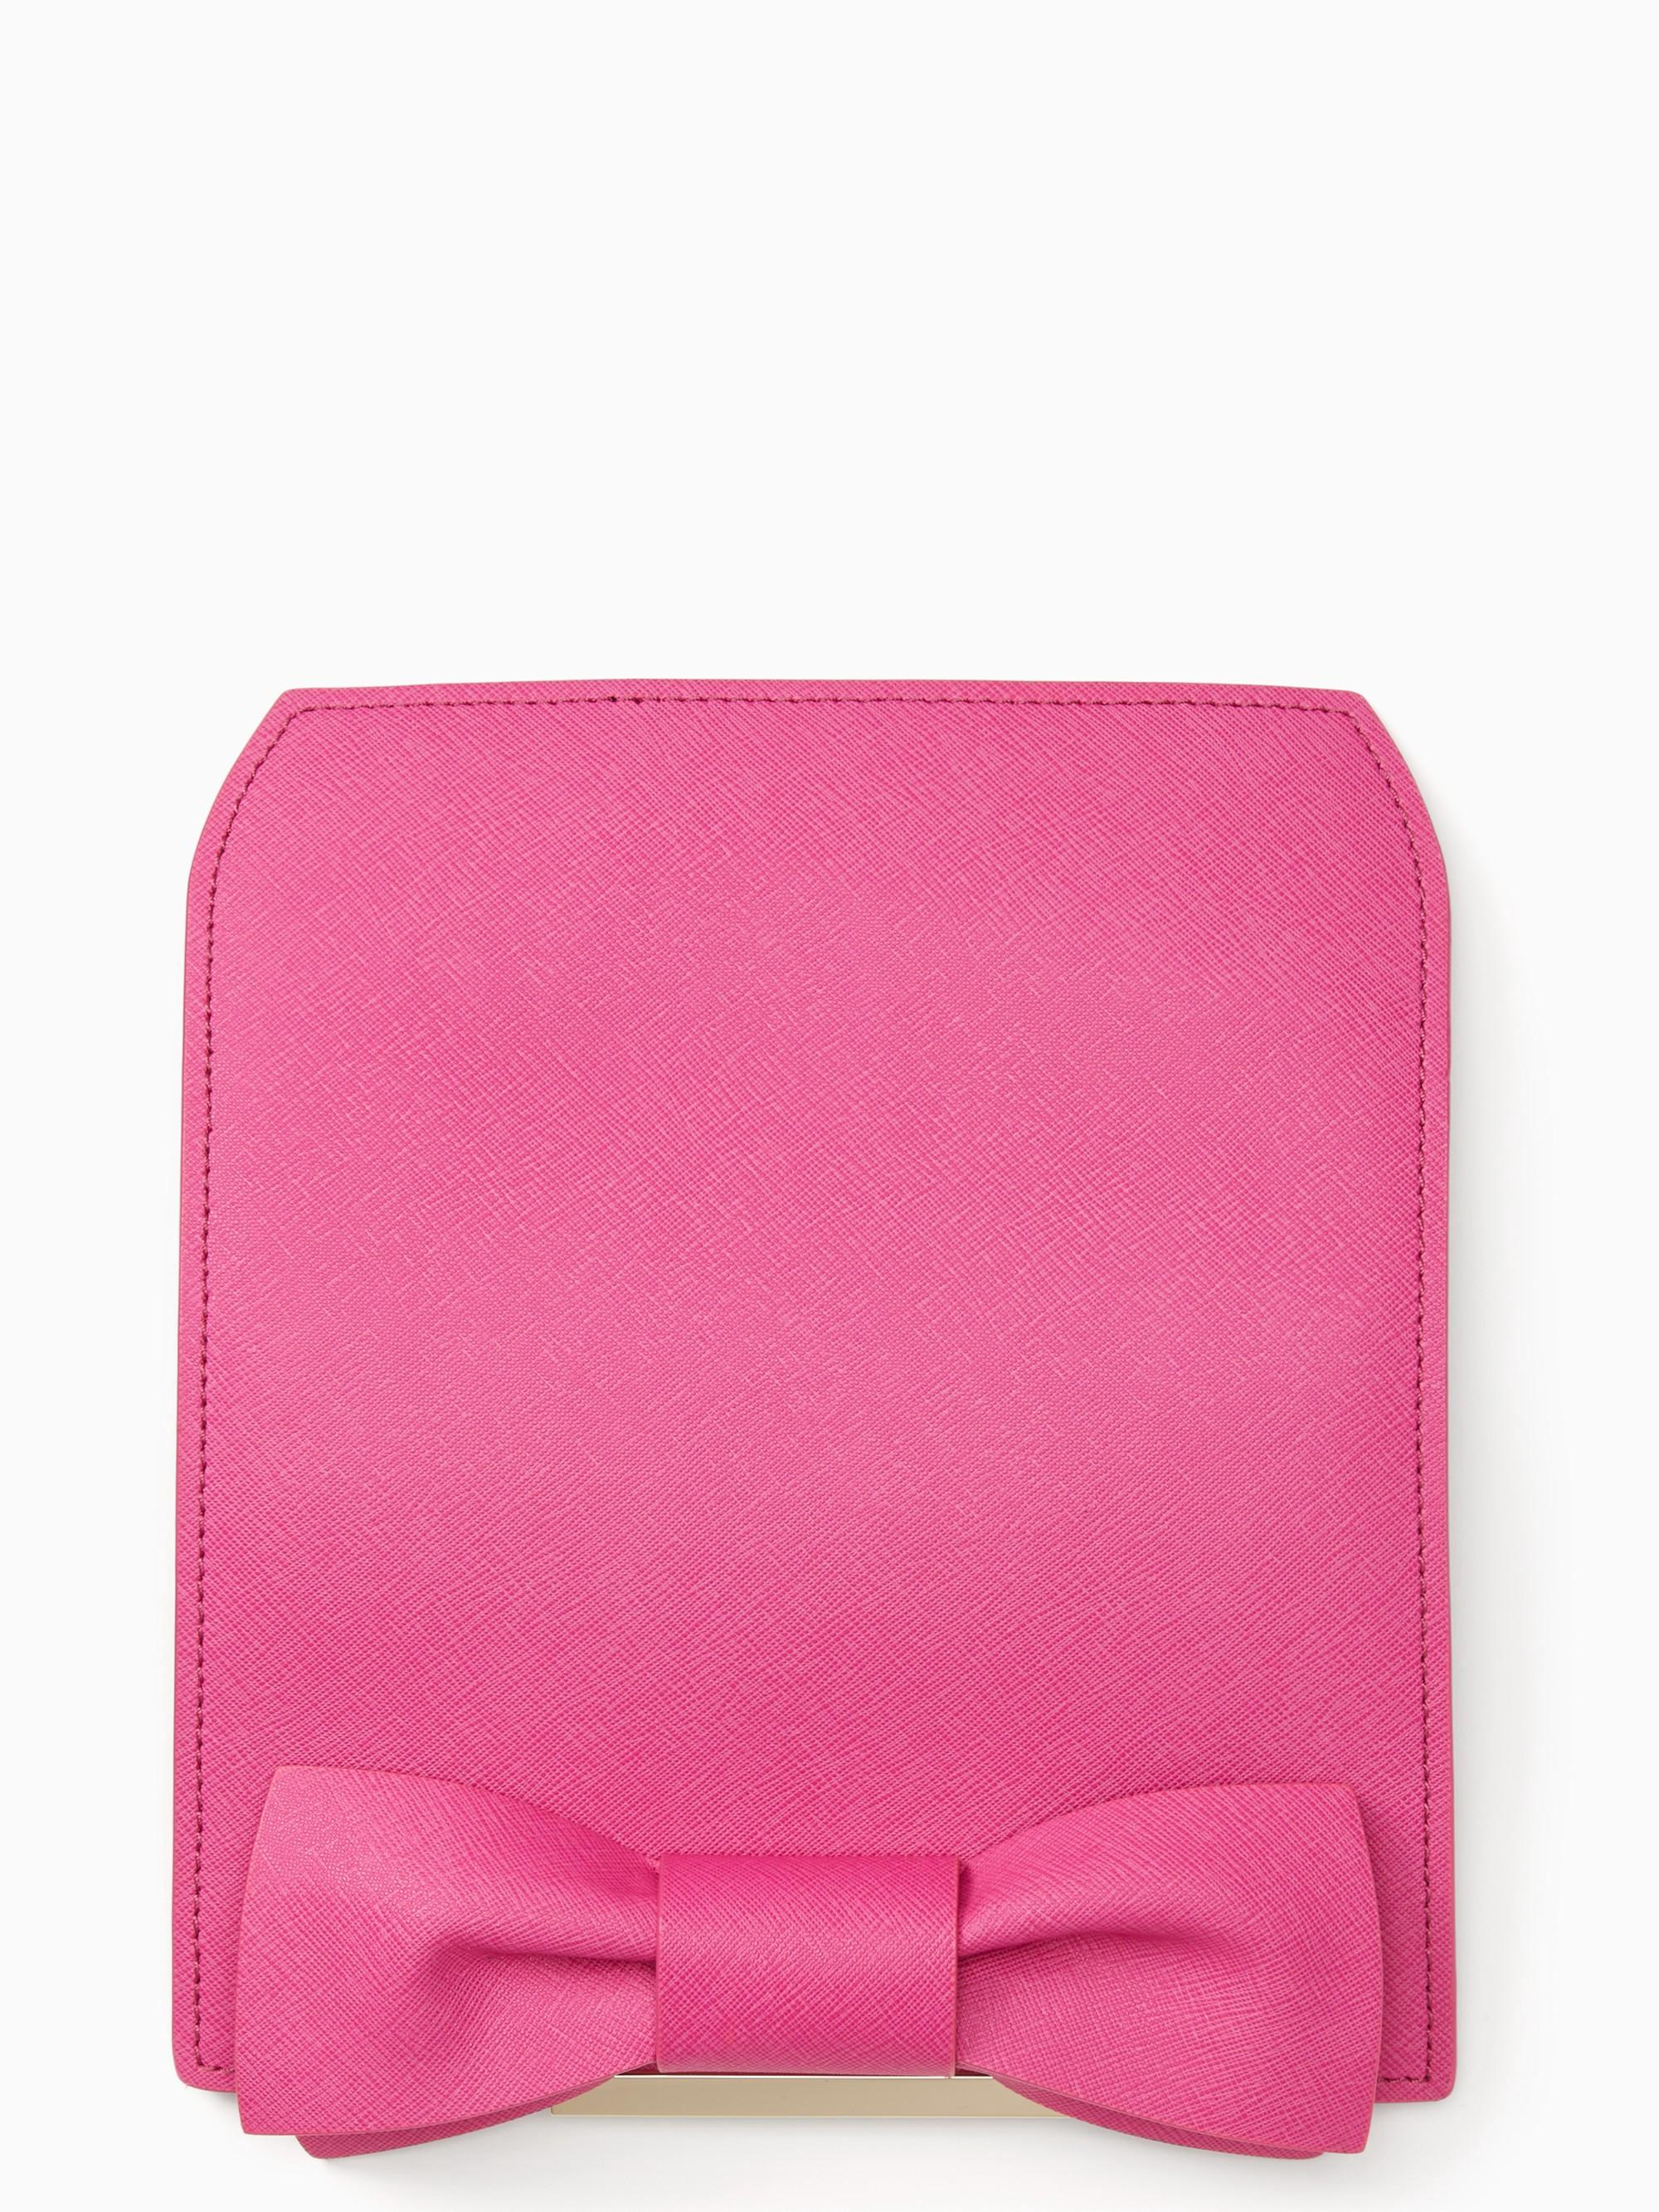 Kate Spade Make It Mine Bow Flap In Vivid Snapdragon